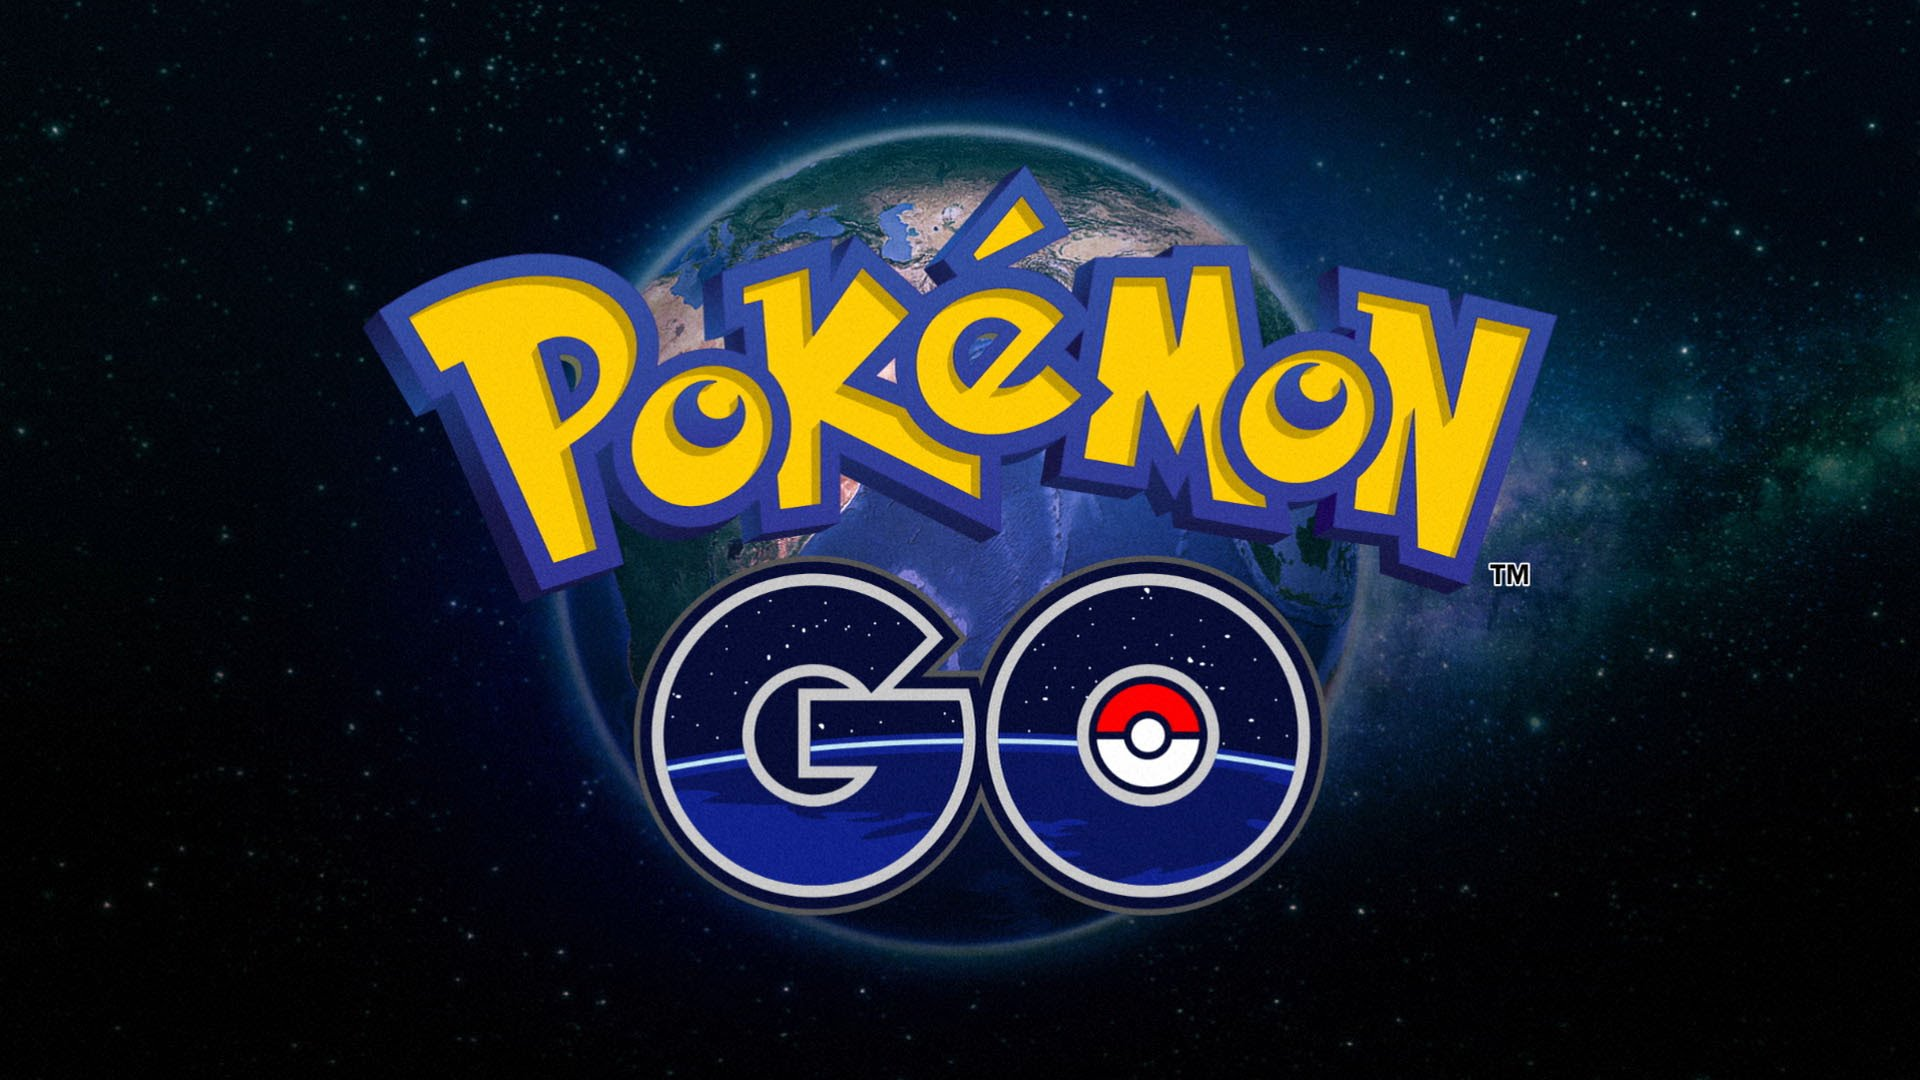 Pokemon GO wearable introduces location-based monster hunting